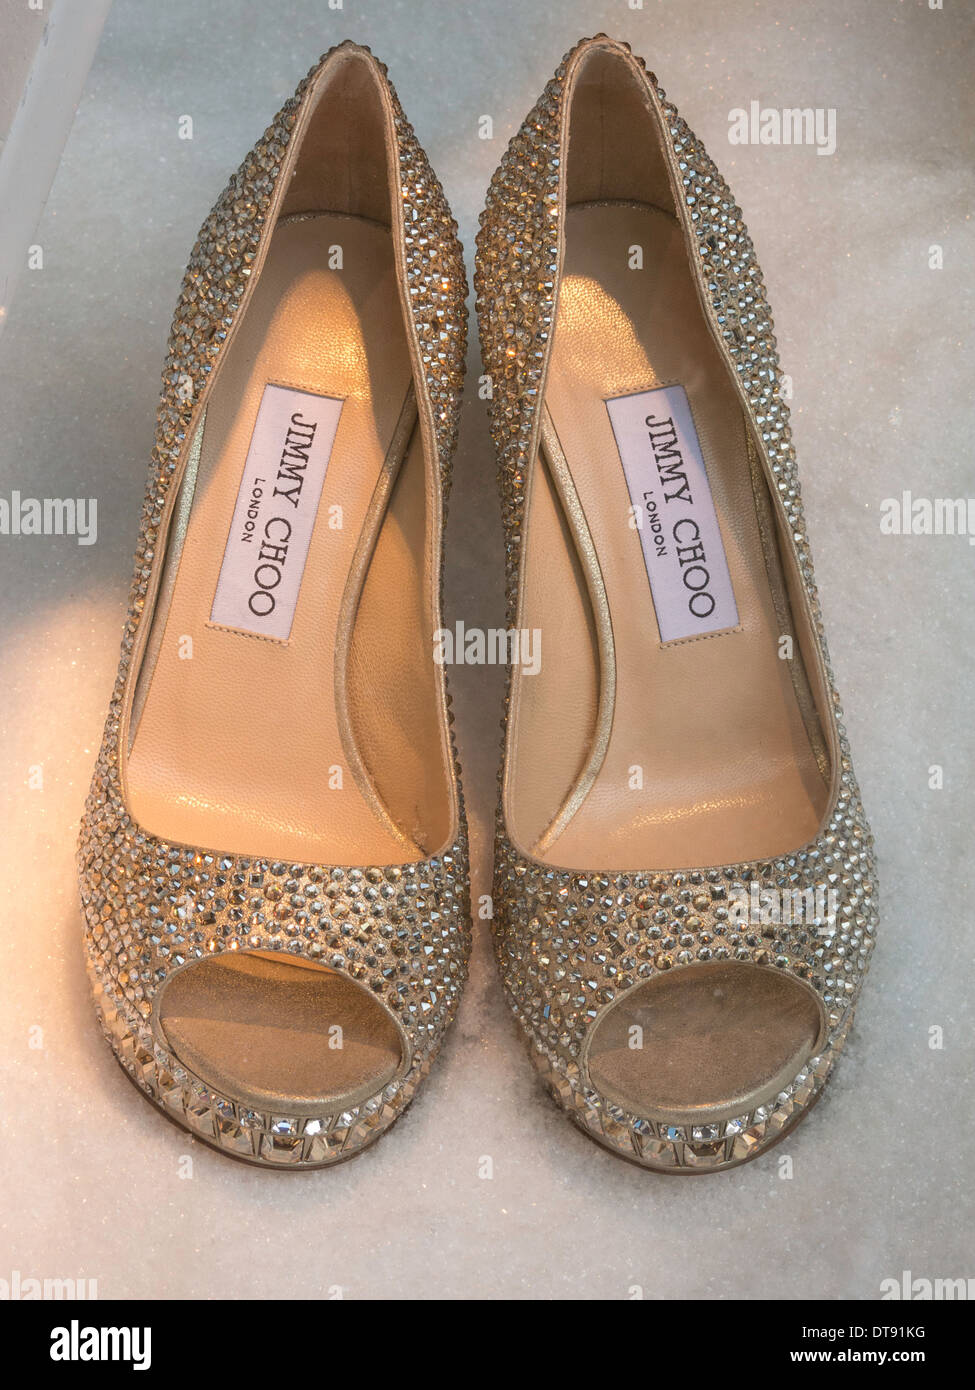 Paire de Jimmy Choo Chaussures, Saks, NYC, USA Photo Stock